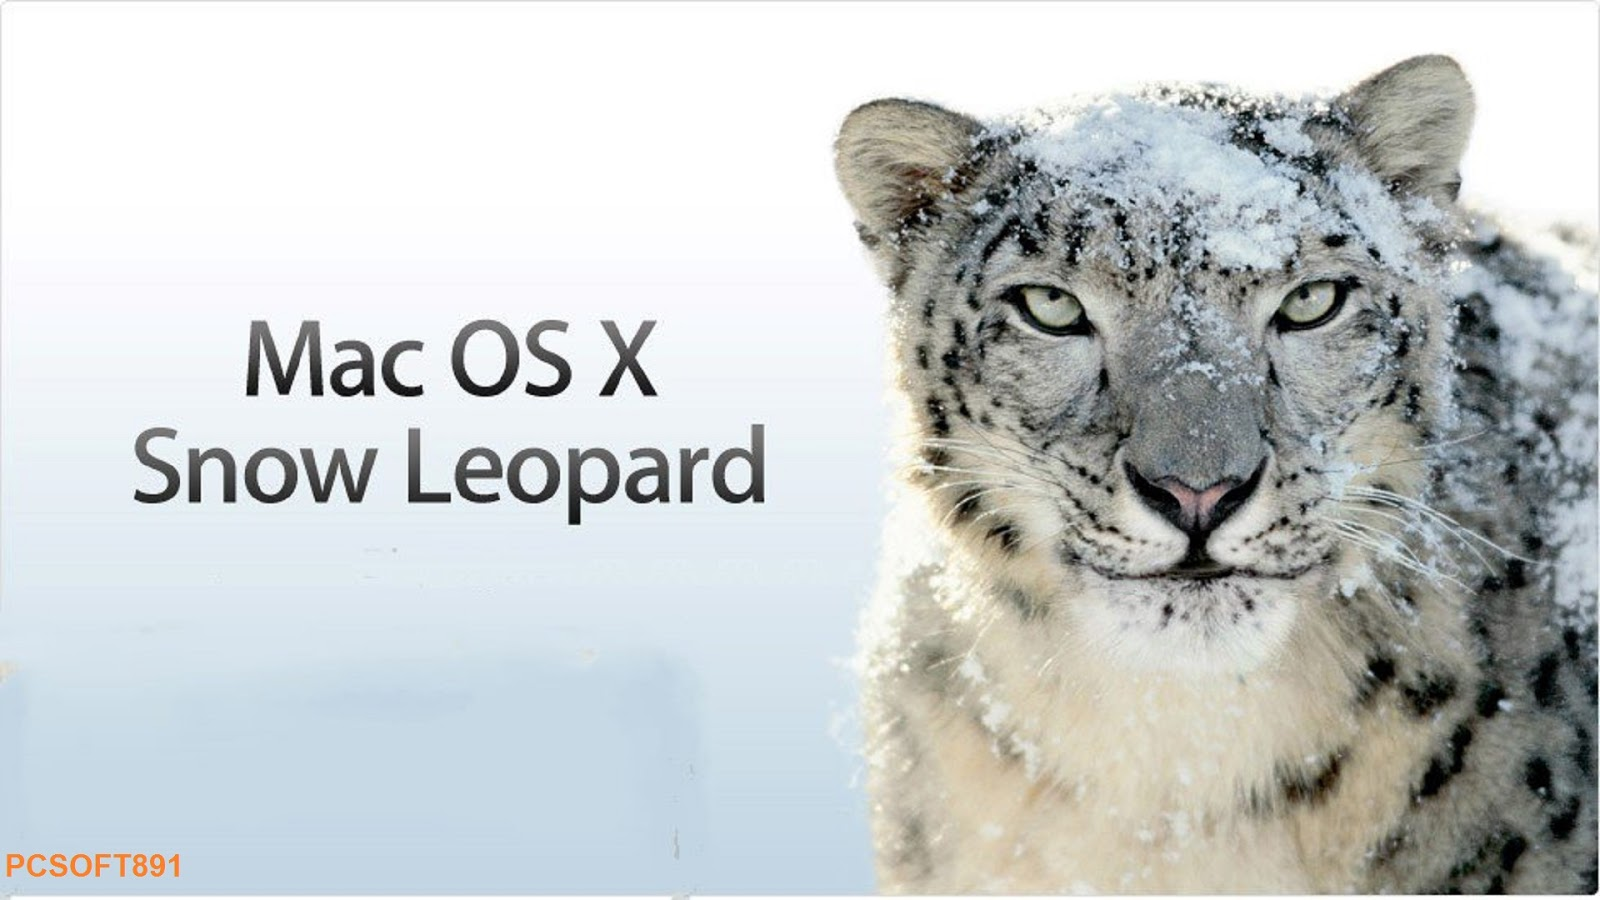 Pcsoft891: Mac OS X Snow Leopard Free Download